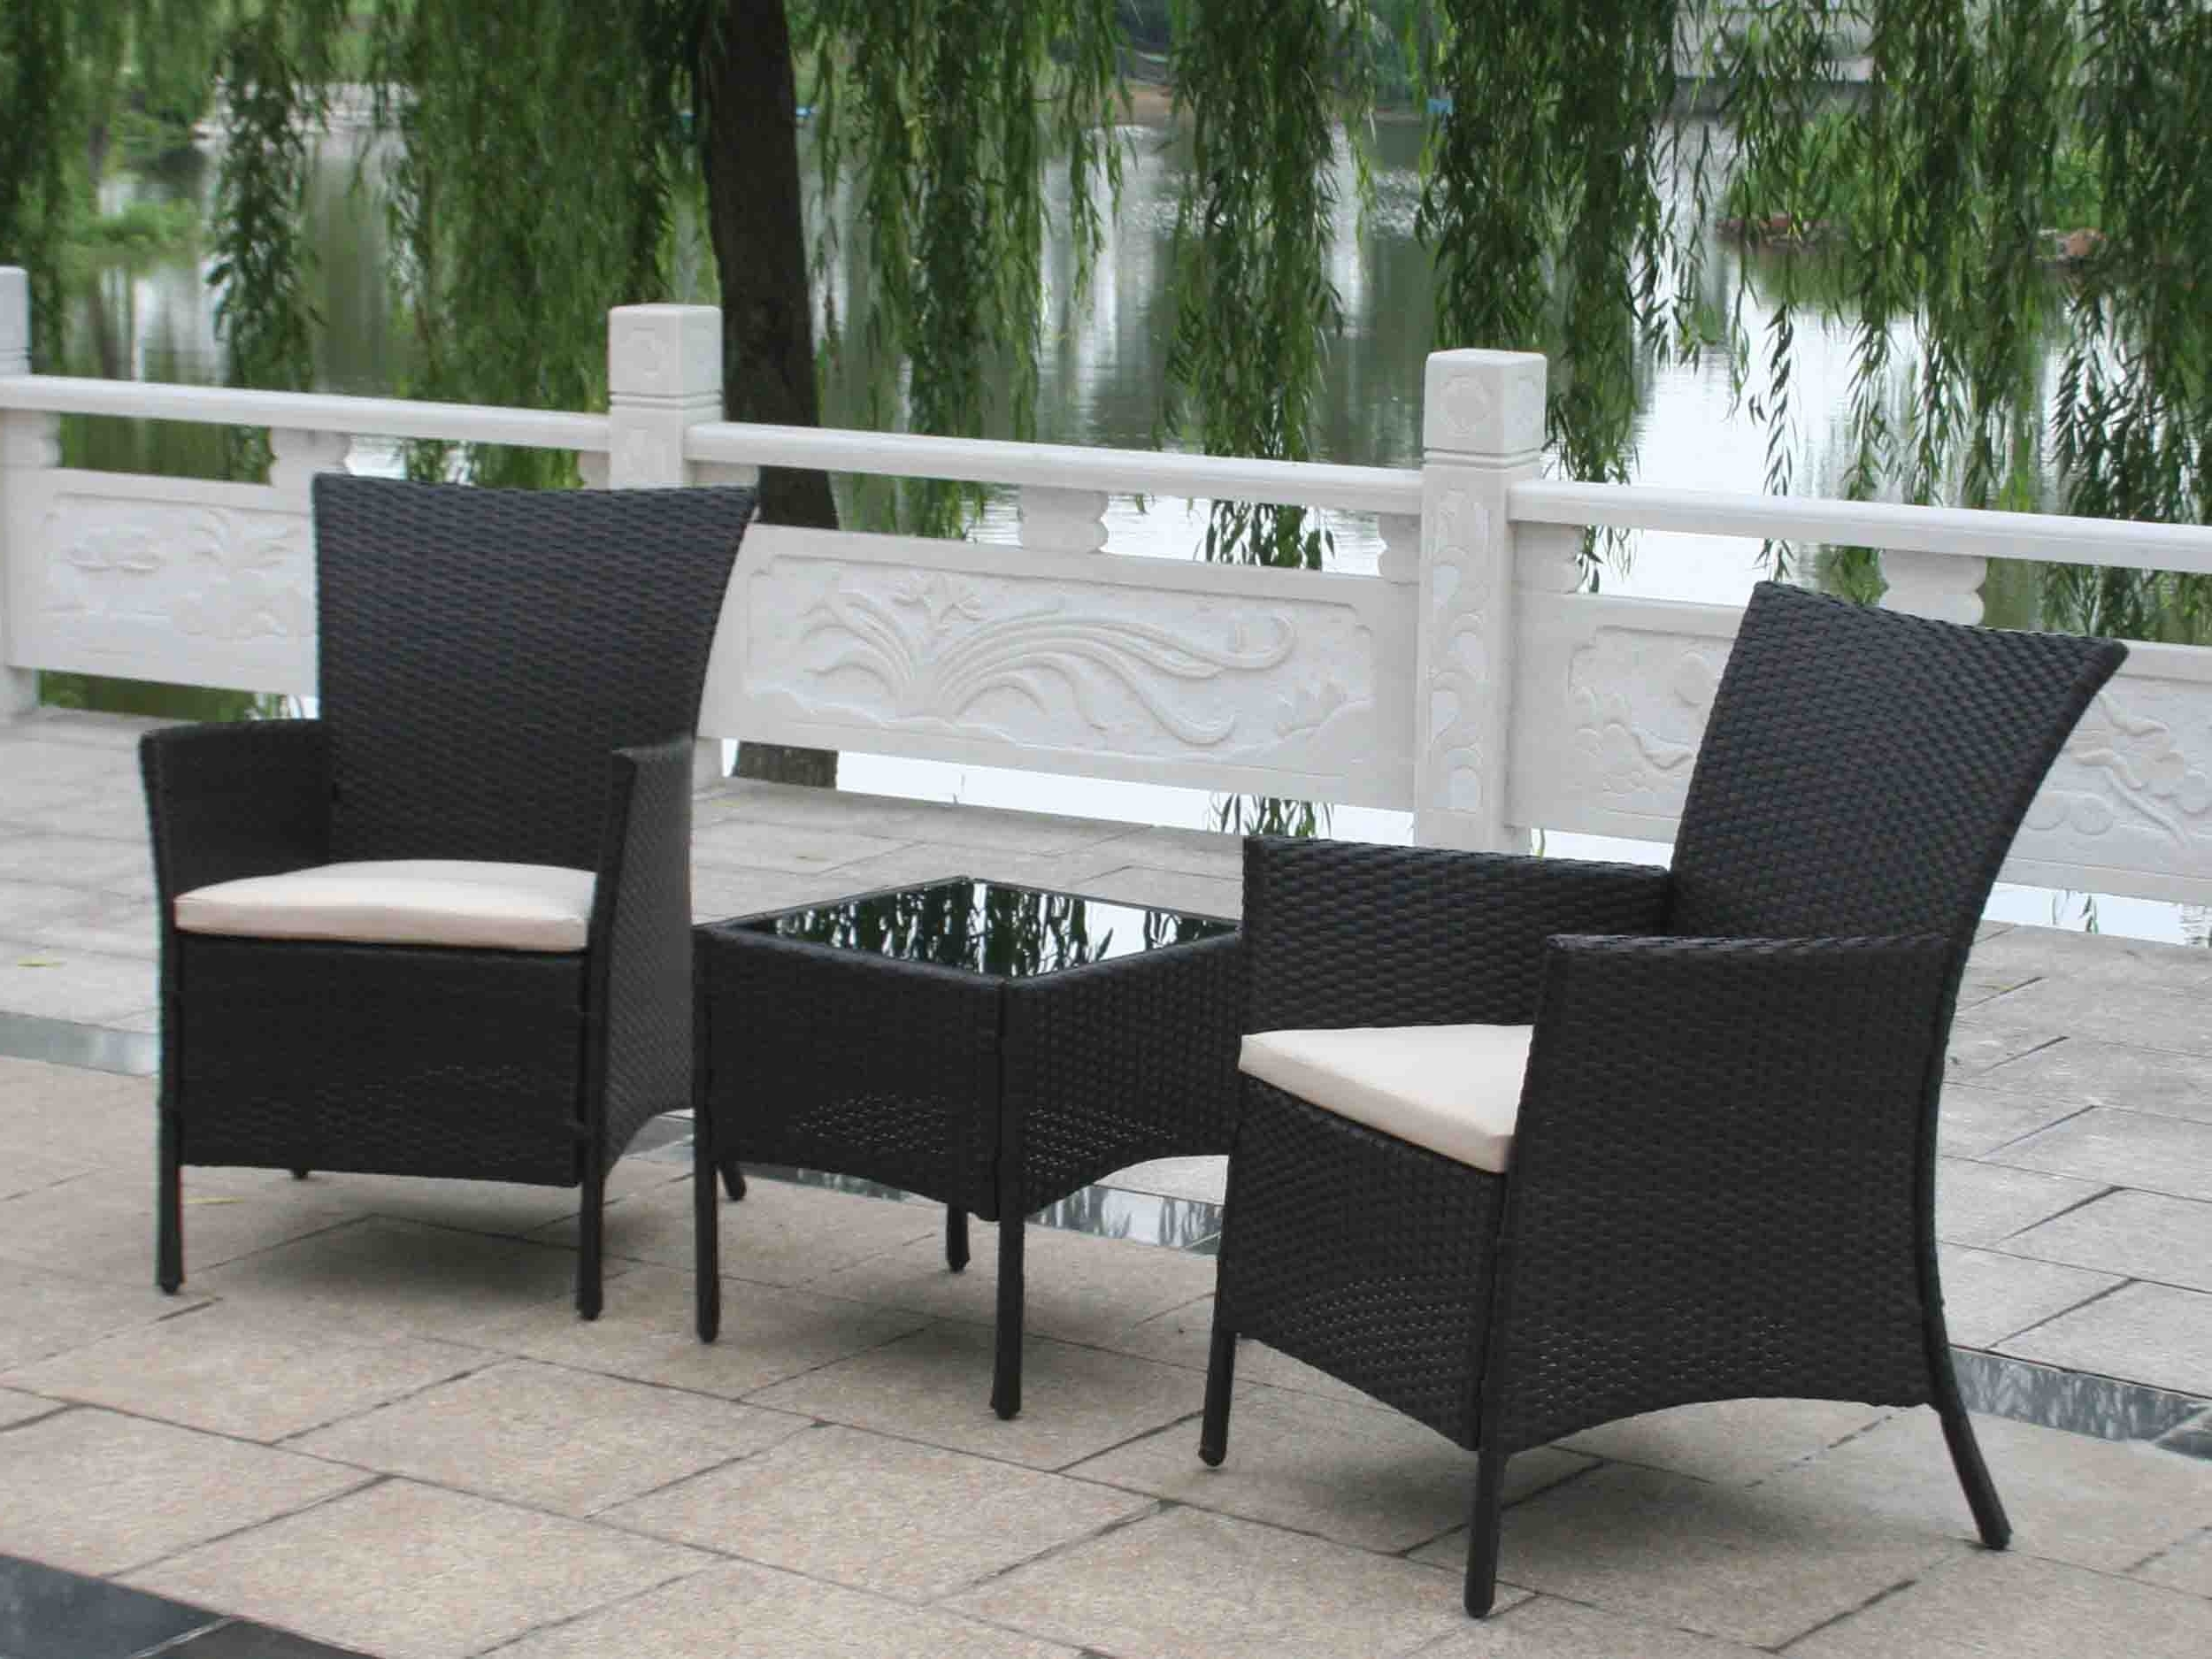 Black Patio Conversation Sets Within Newest Patio : Black Wicker Patio Furniture Black Wicker Patio Furniture (View 11 of 20)